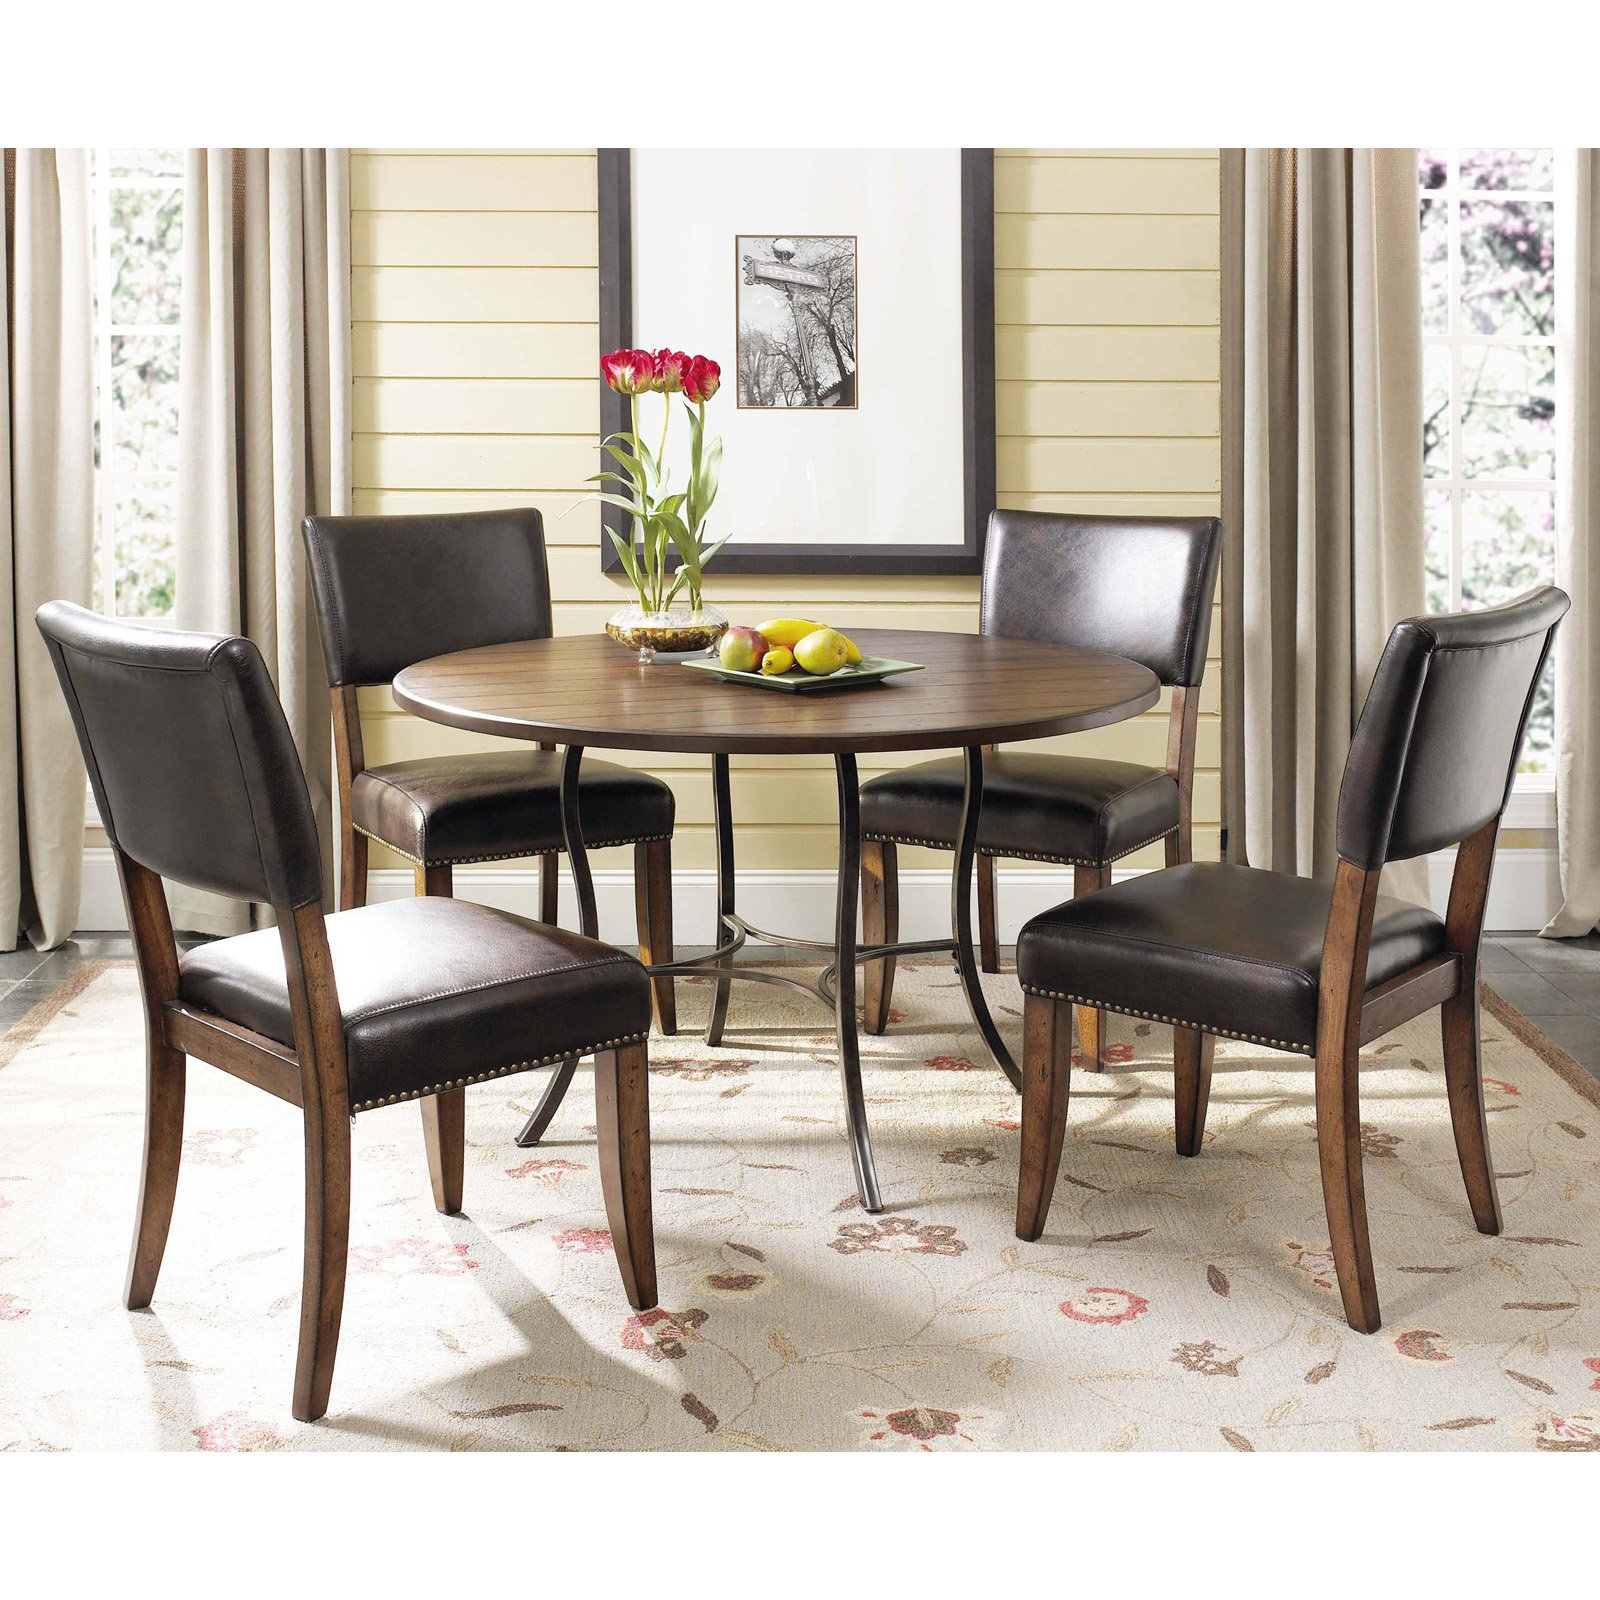 Hillsdale Cameron 5 Piece Round Wood and Metal Dining Table Set with Parson Chairs